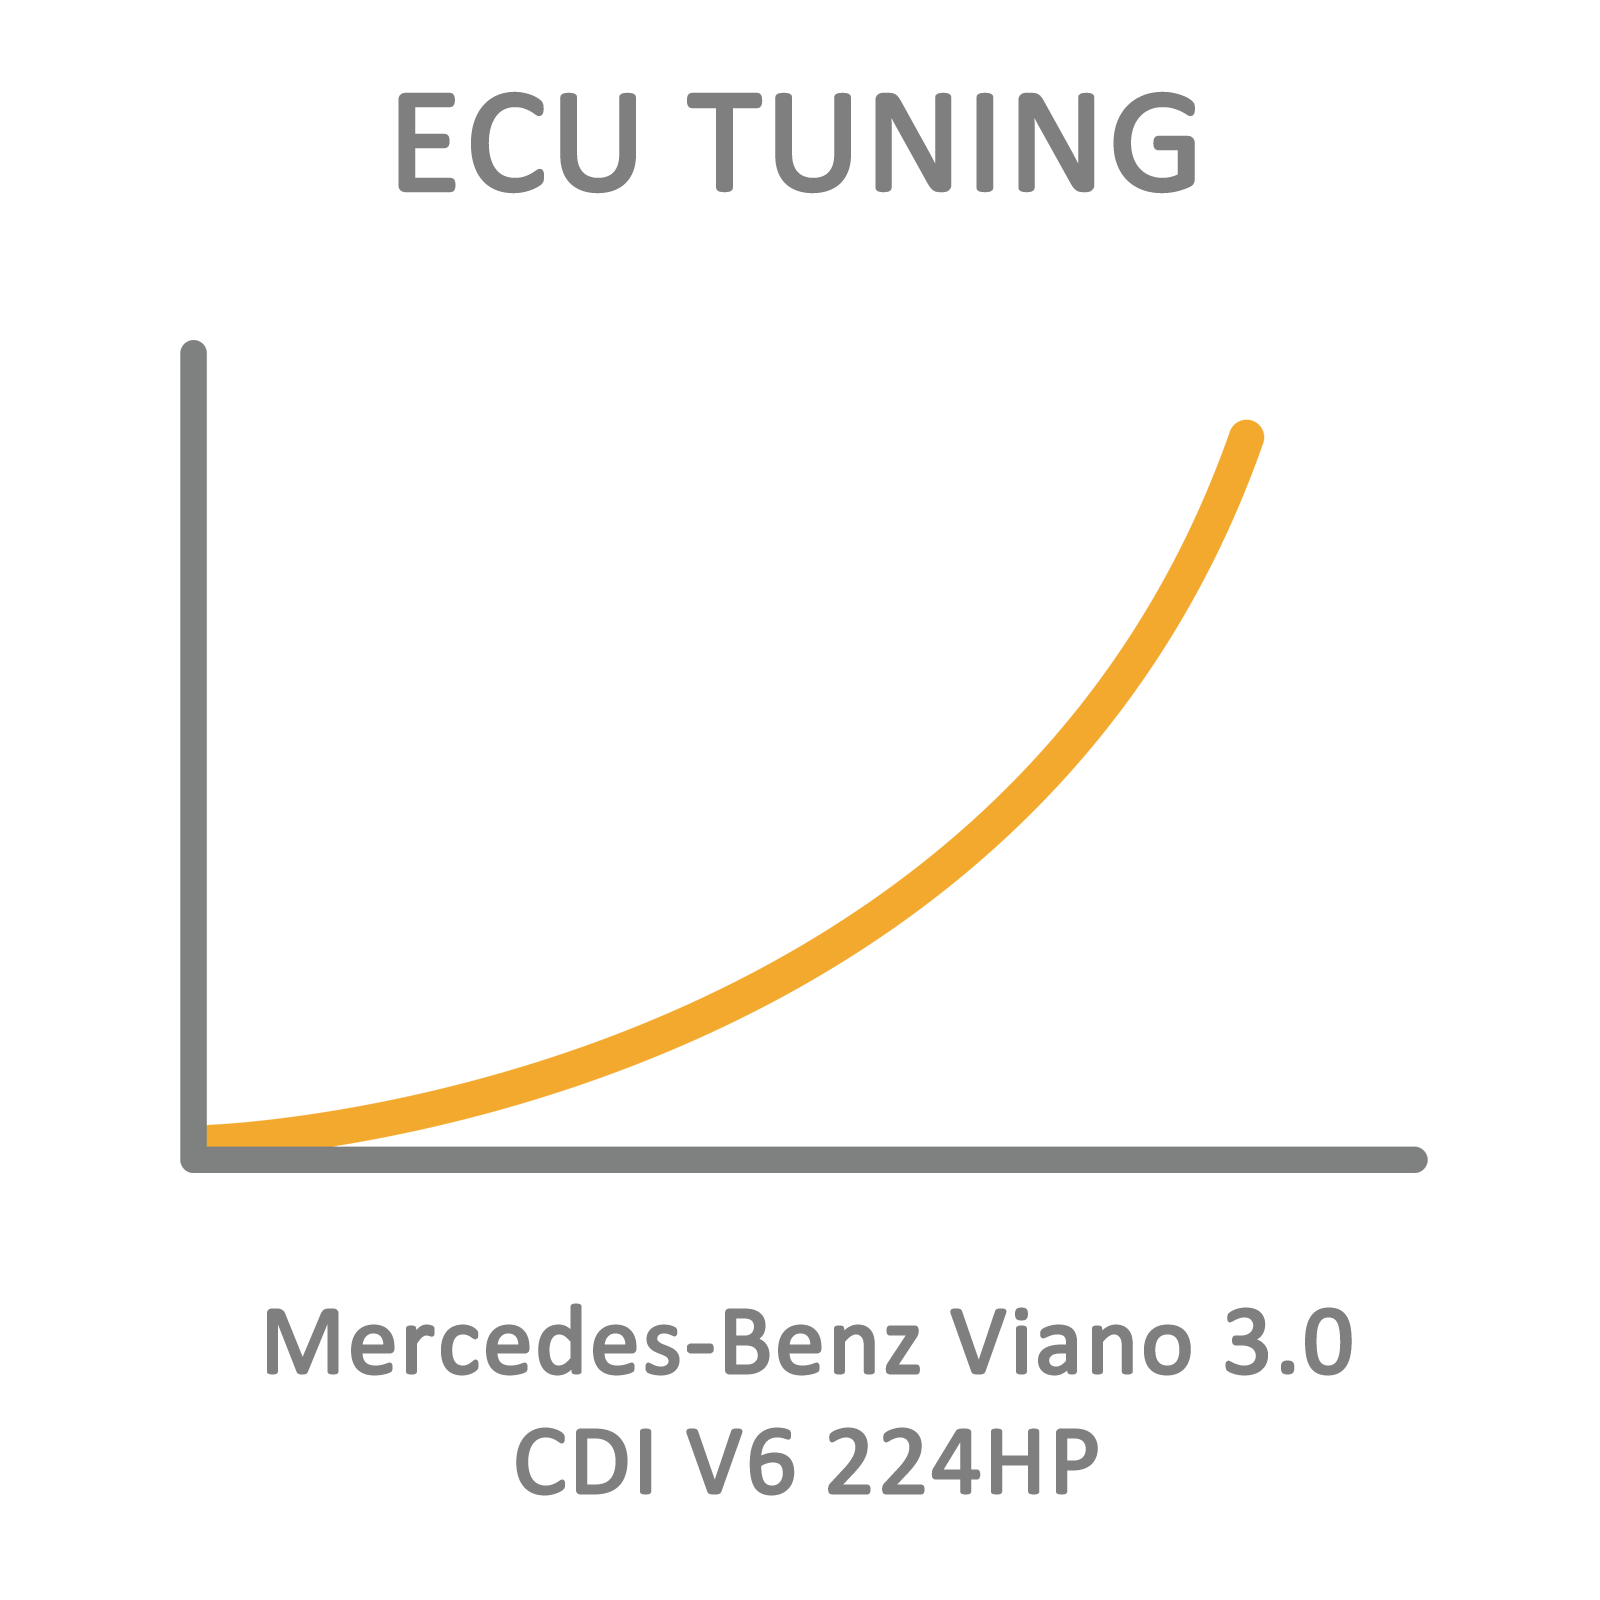 Mercedes-Benz Viano 3.0 CDI V6 224HP ECU Tuning Remapping